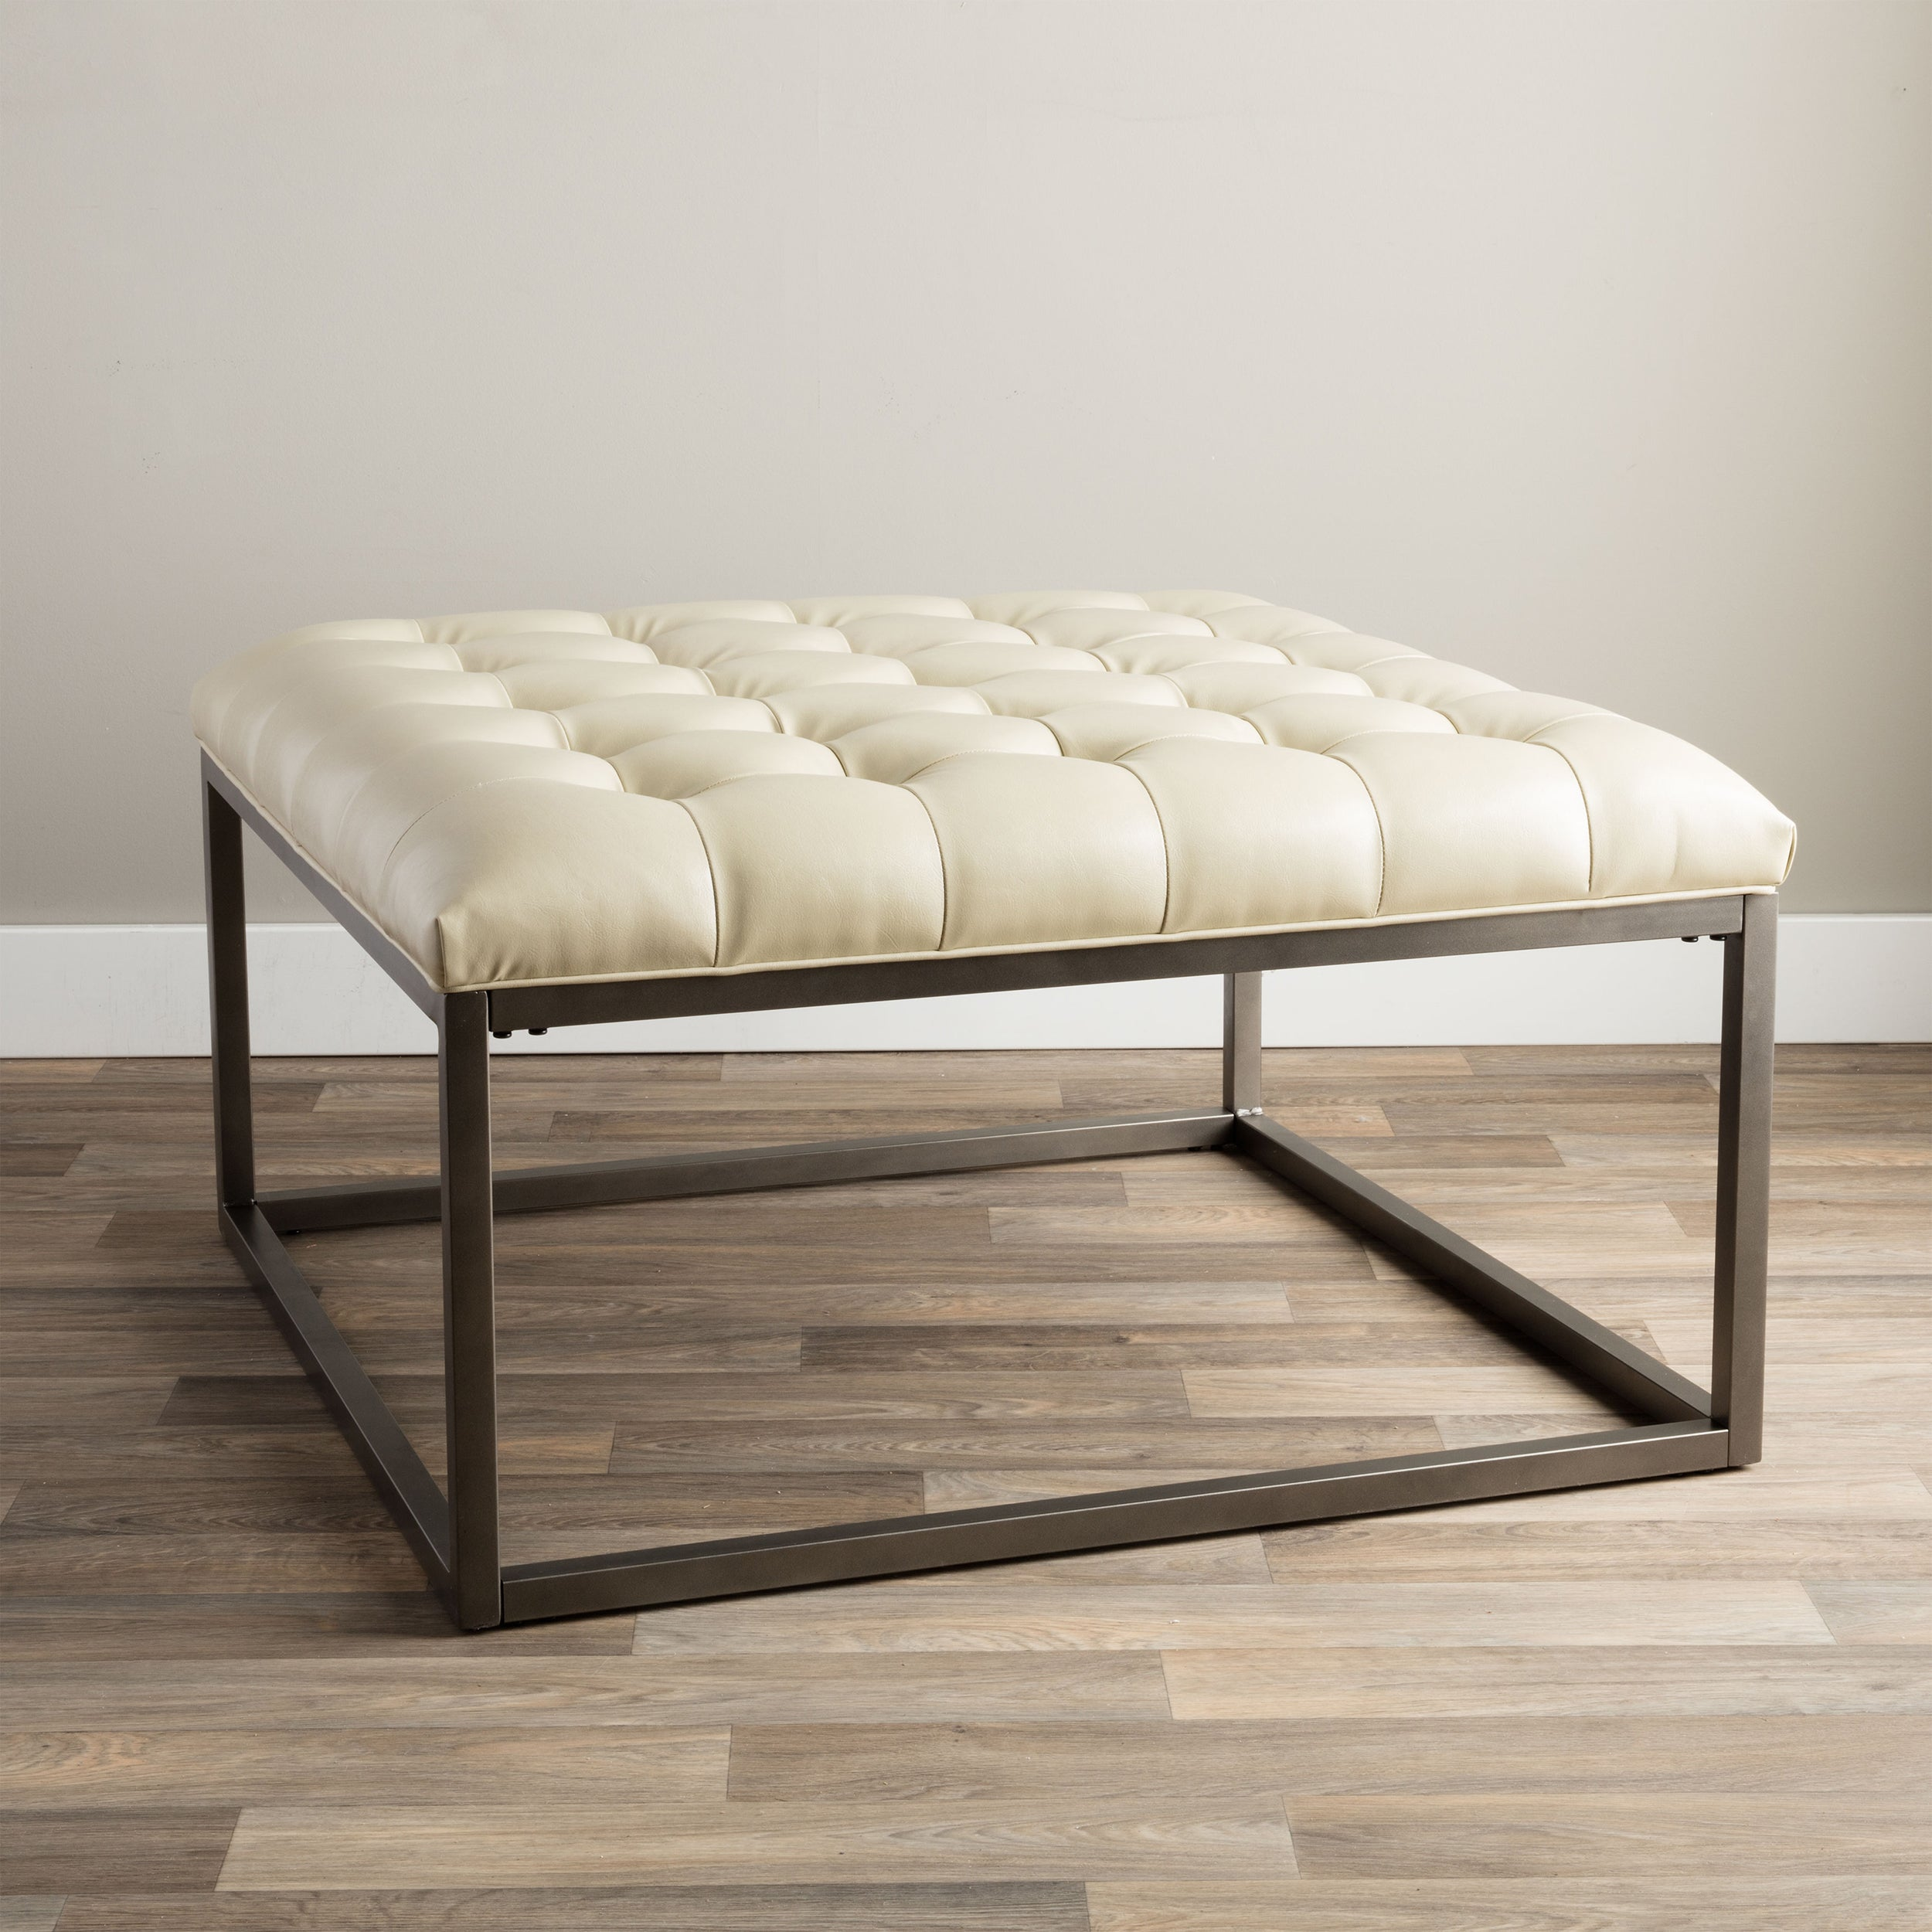 Shop Jasper Laine Healy Cream Leather Tufted Ottoman   Free Shipping Today    Overstock.com   7869951